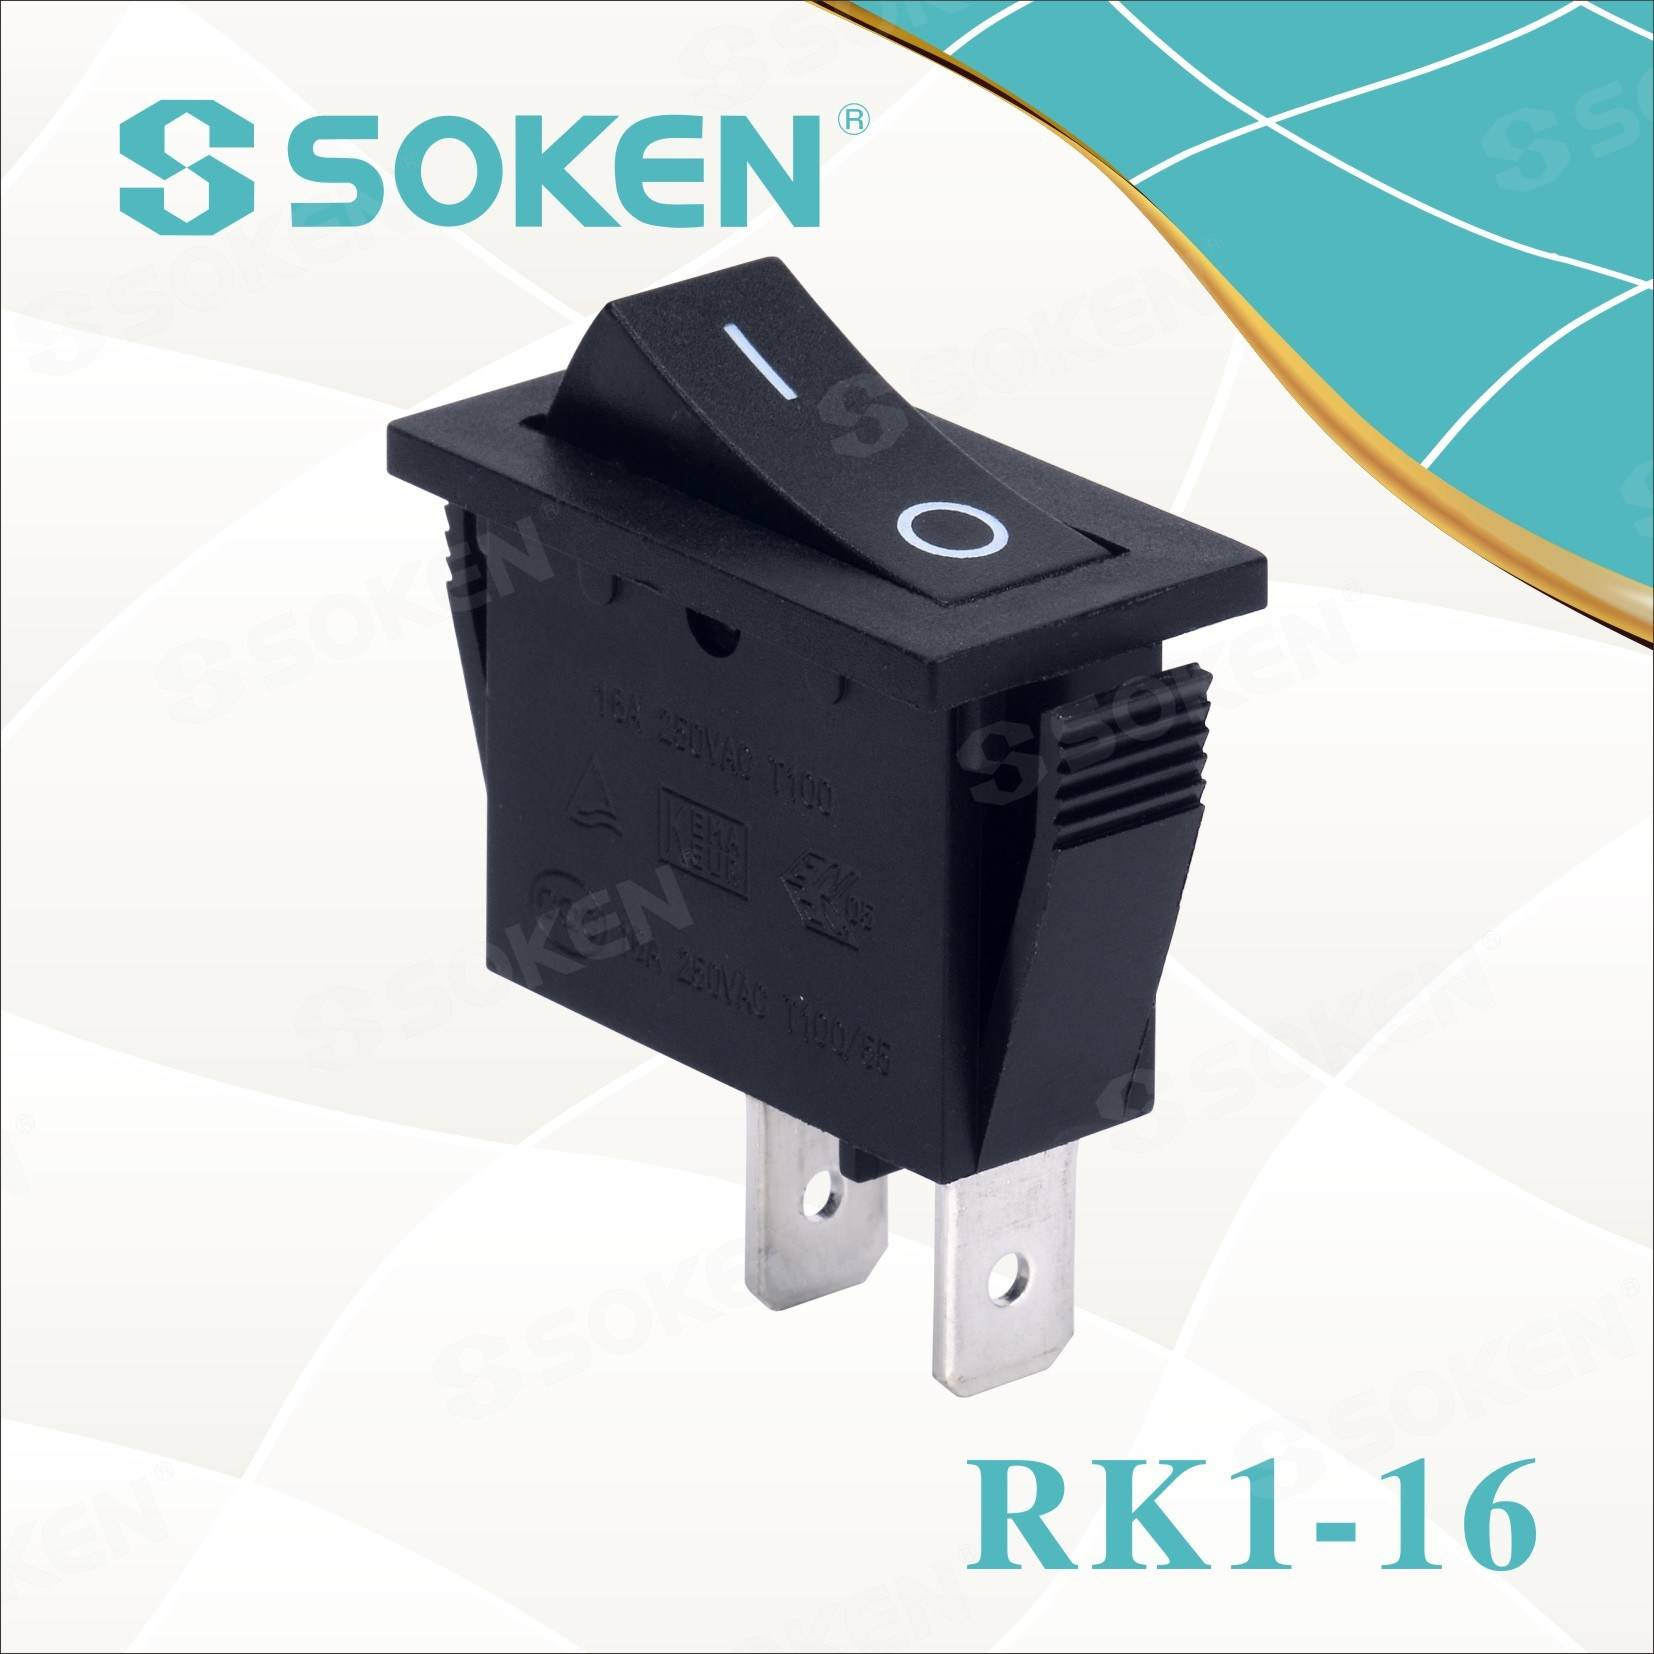 Soken Rk1-16 1x1 B / R sur for Rocker Ŝaltilo